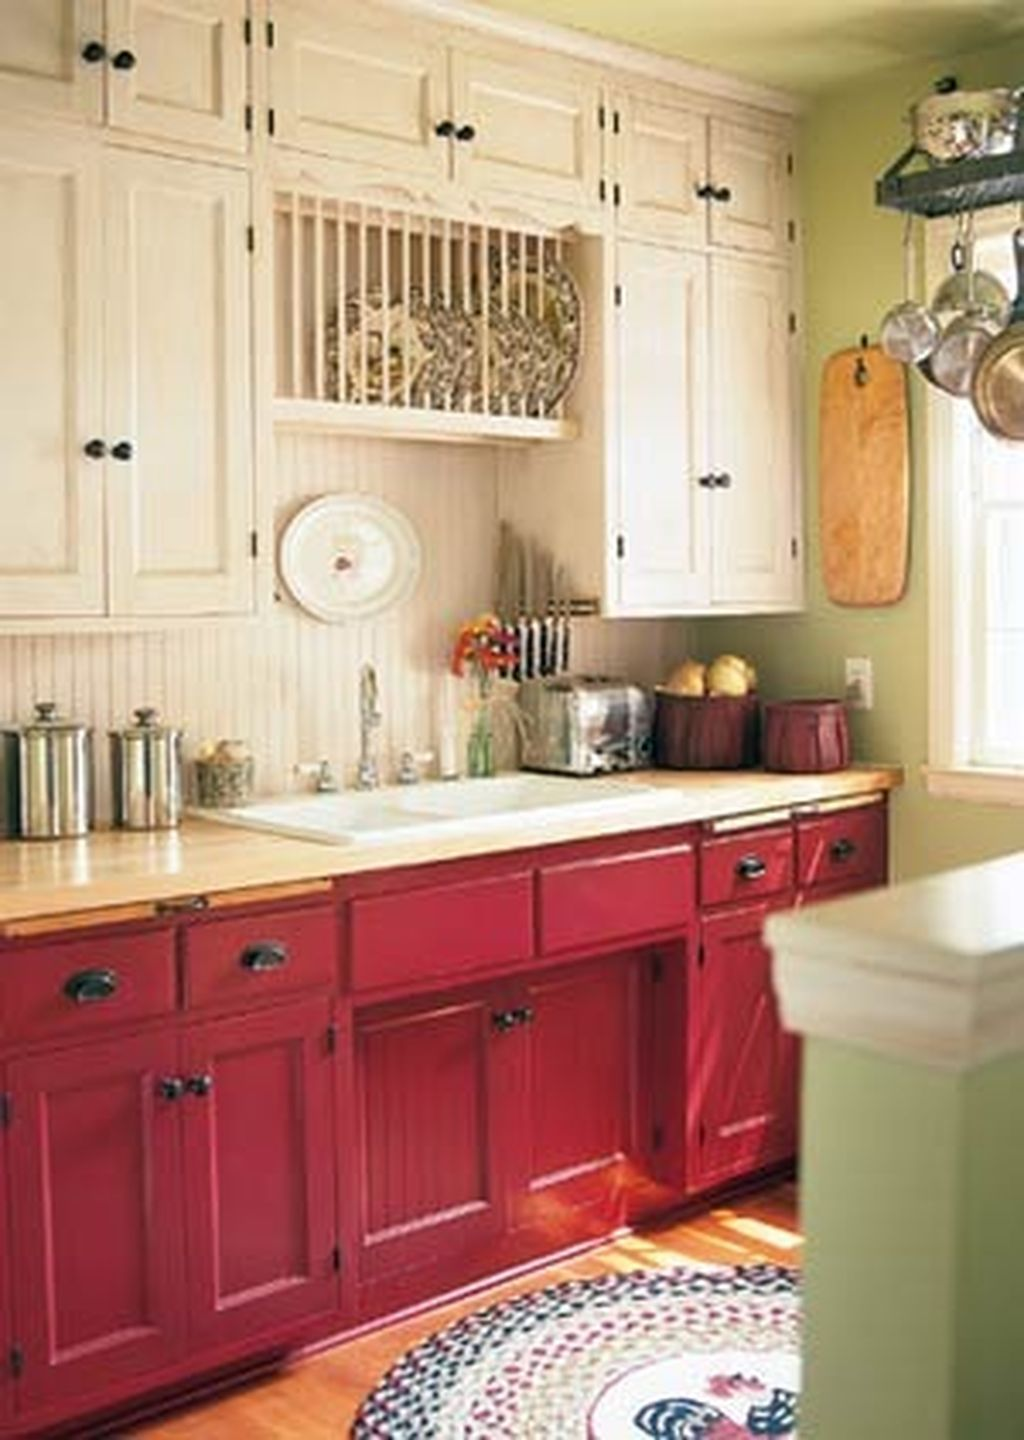 French Country Kitchen Budget cool french country kitchen ideas on a budget 22 | french country